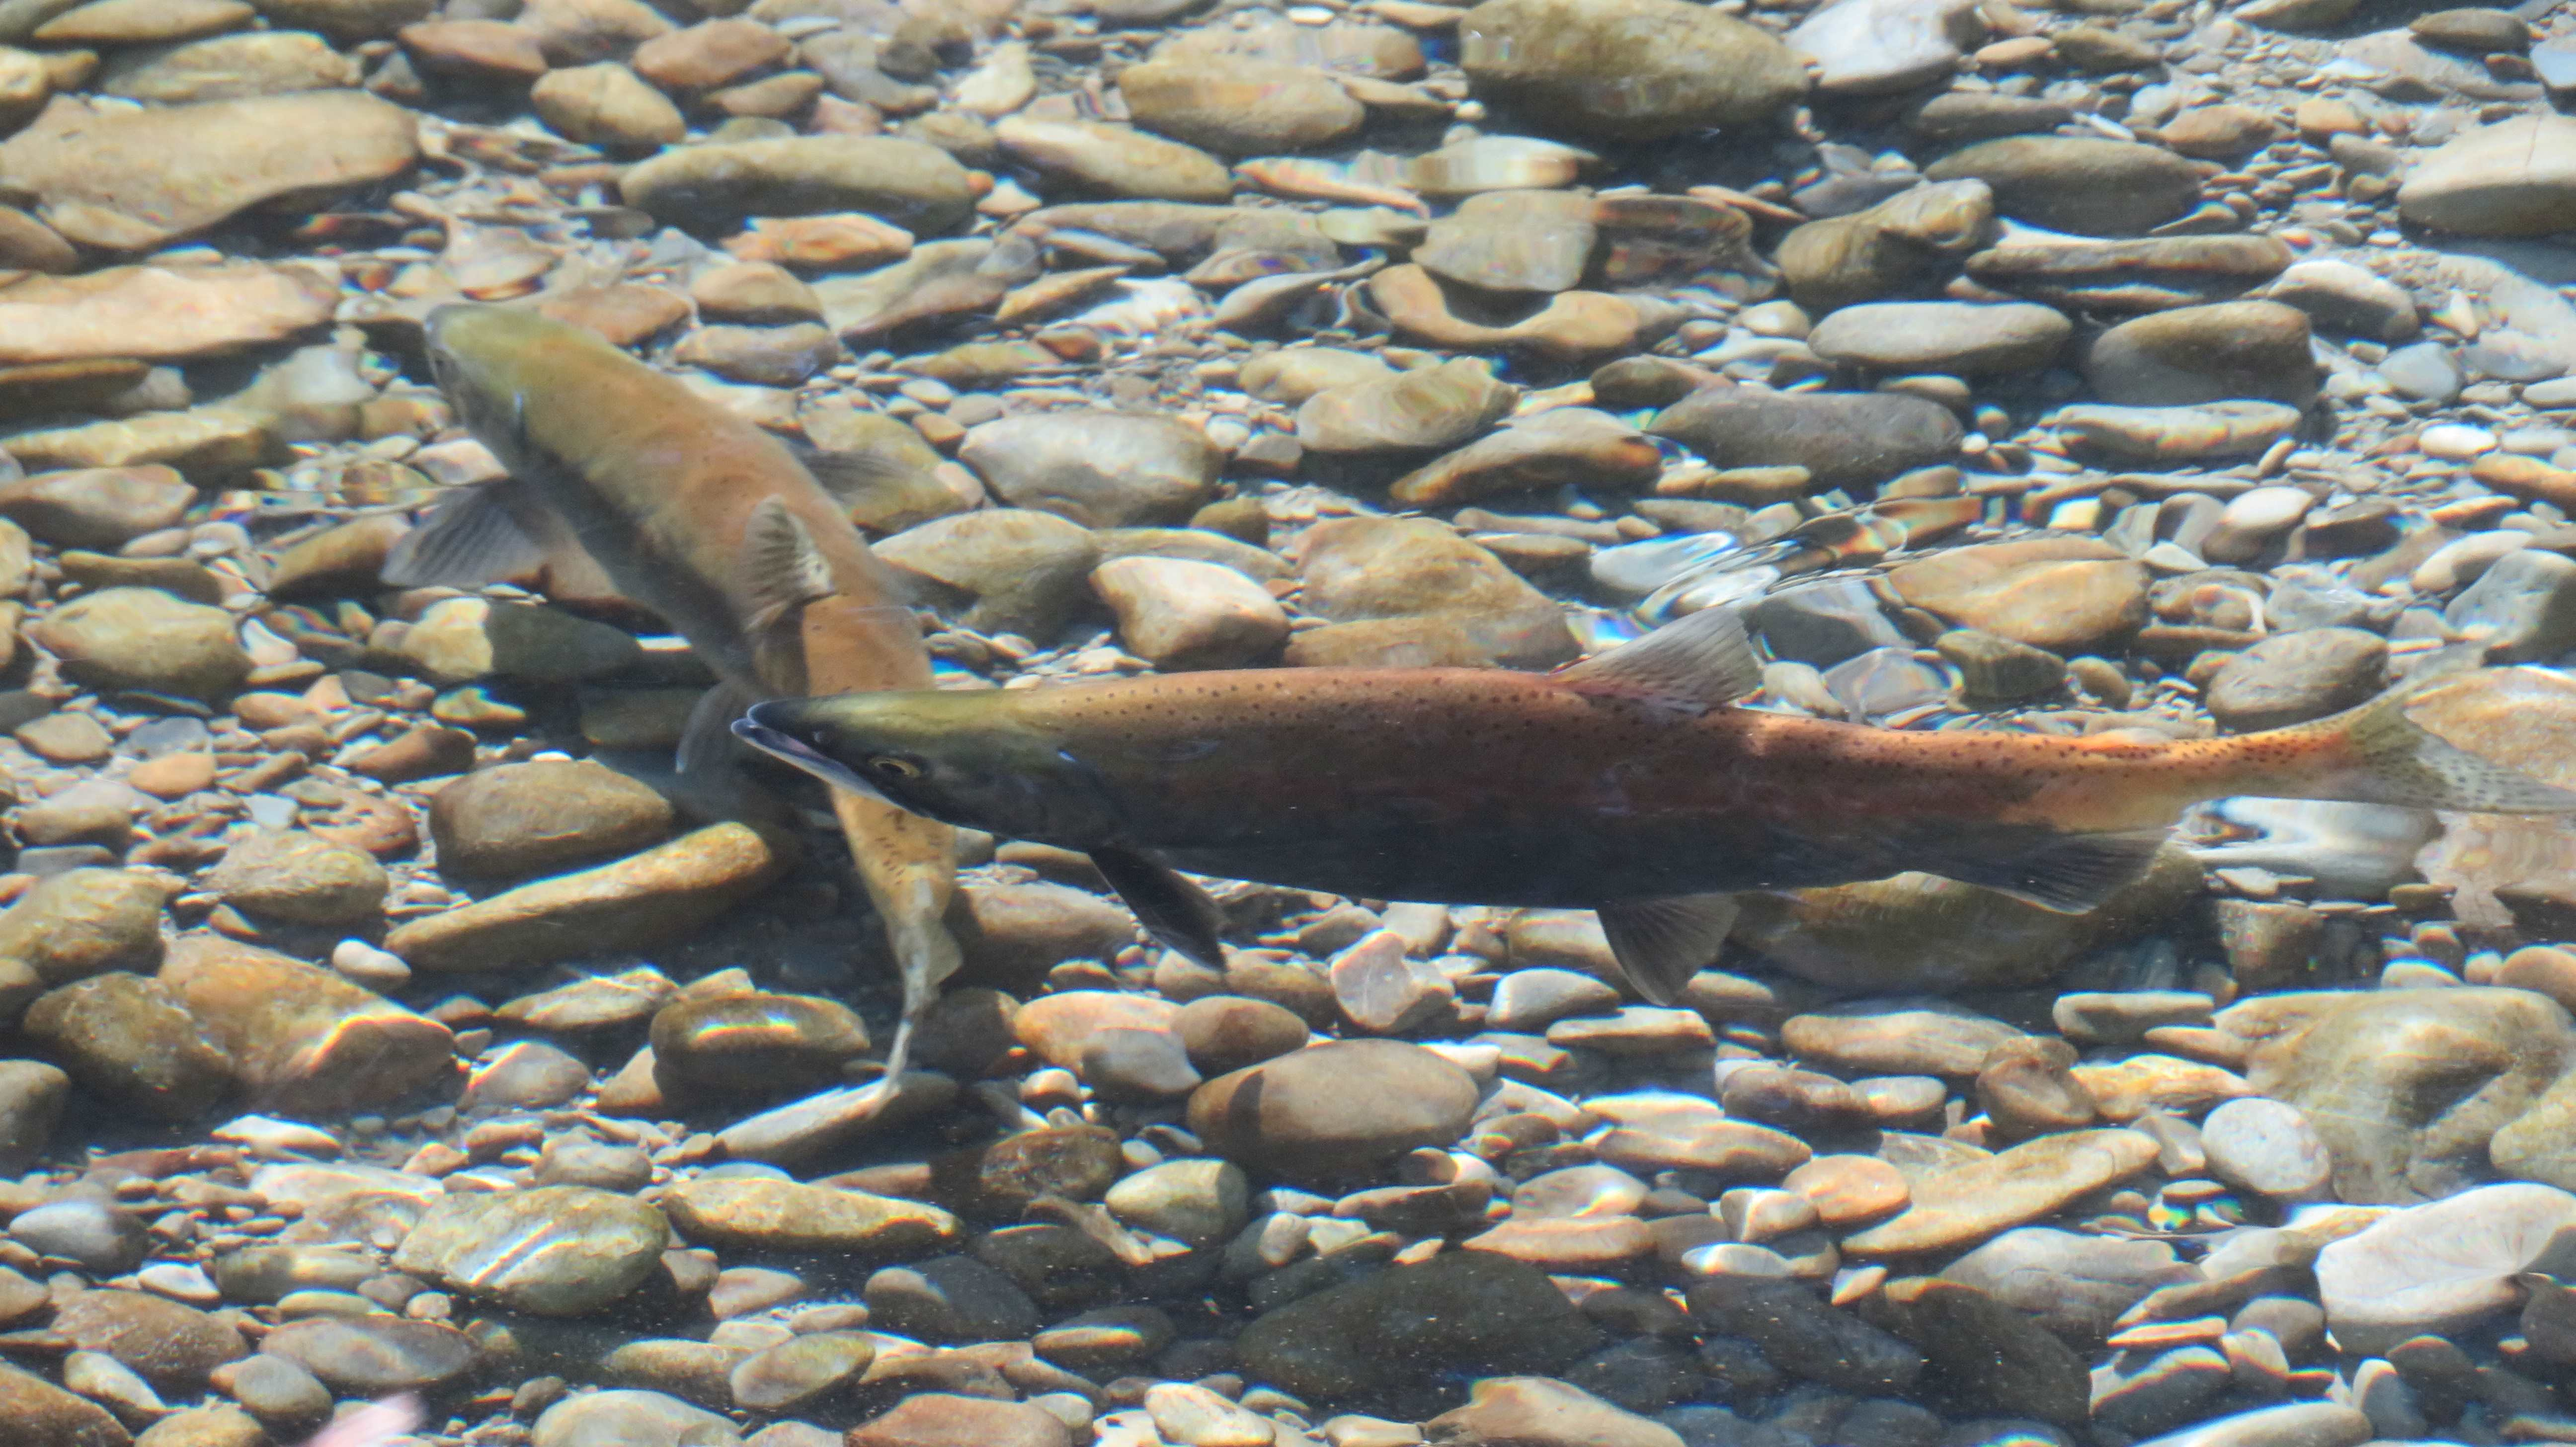 WFR1819.49sockeye salmon preparing to spawn in the Twizel River Credit Jayde Couper